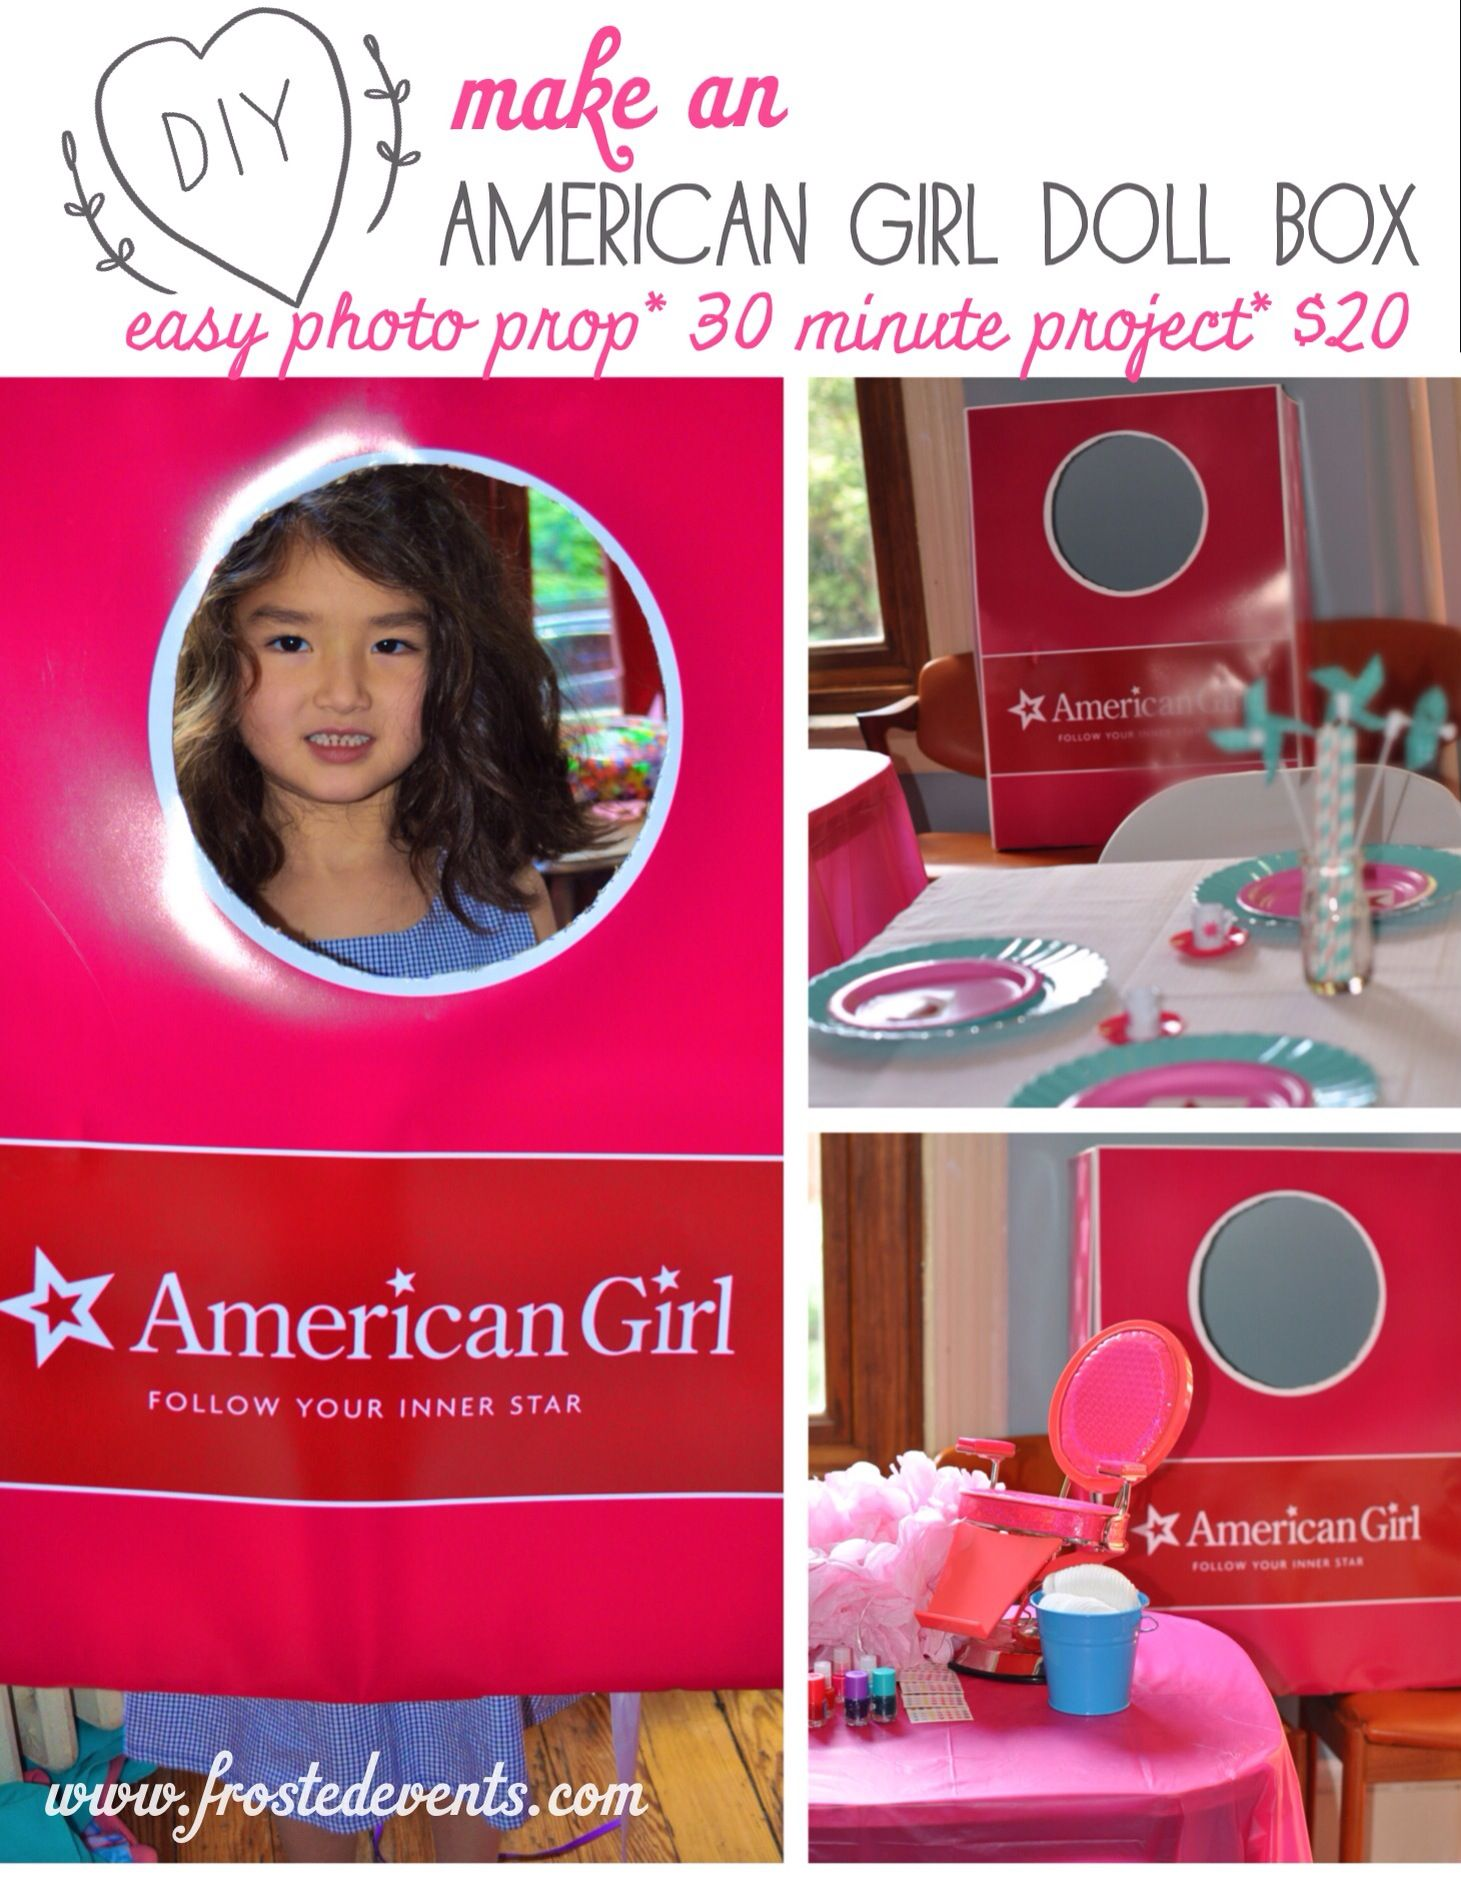 diy how to make an american girl doll box photo prop kids party